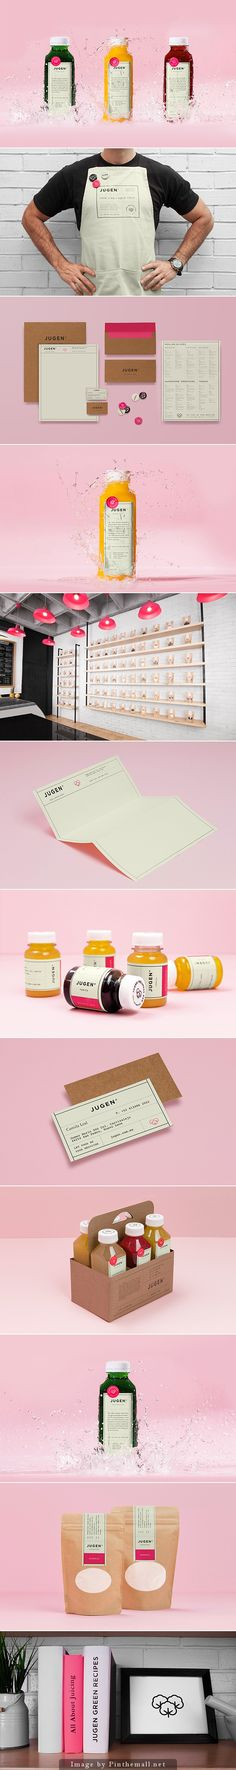 JUGEN health foods, fresh #packaging and #identity, by Anagrama PD